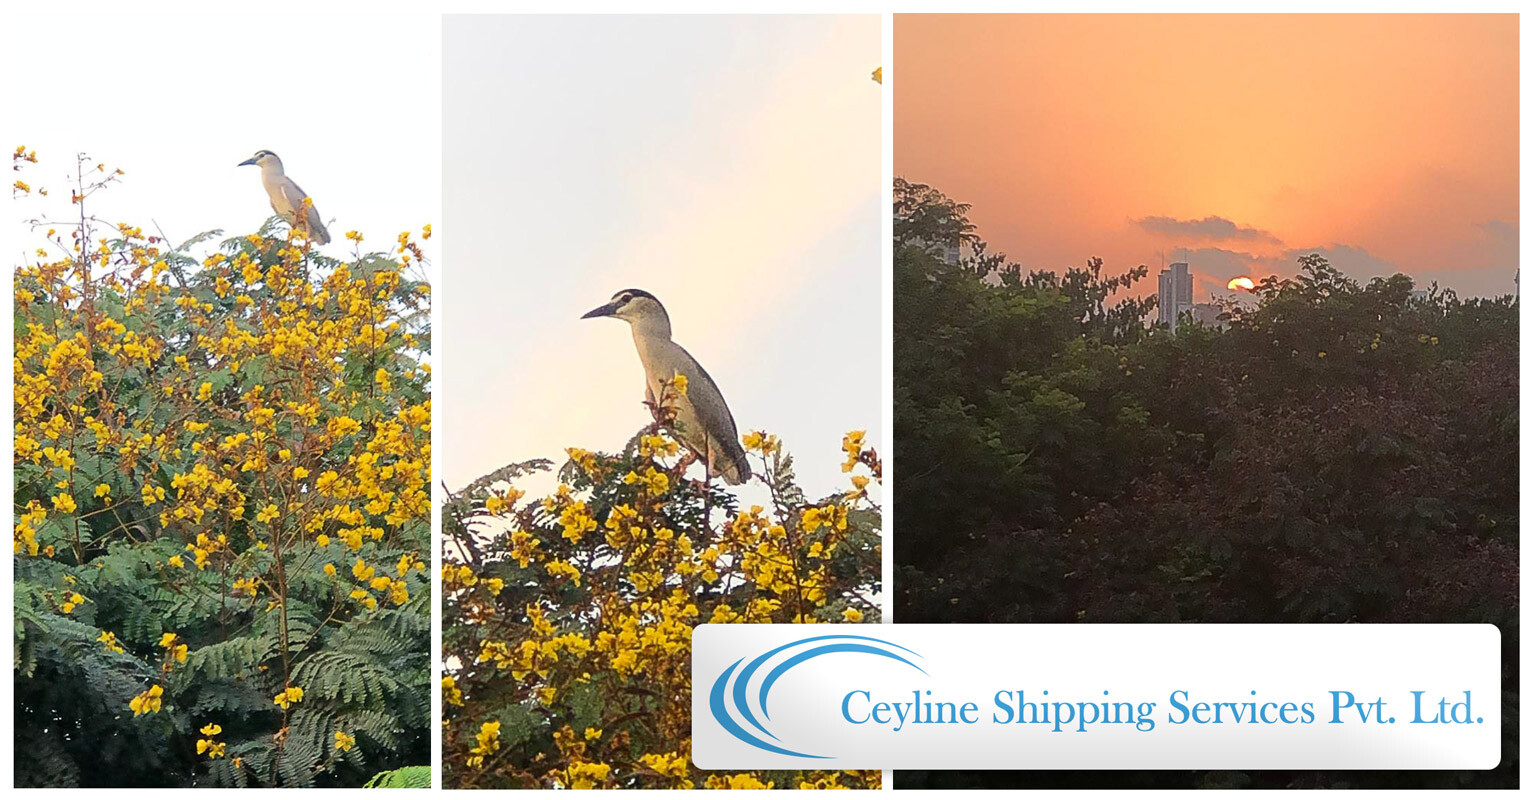 Ceylline-Shipping-Photo-of-Bird-in-tree